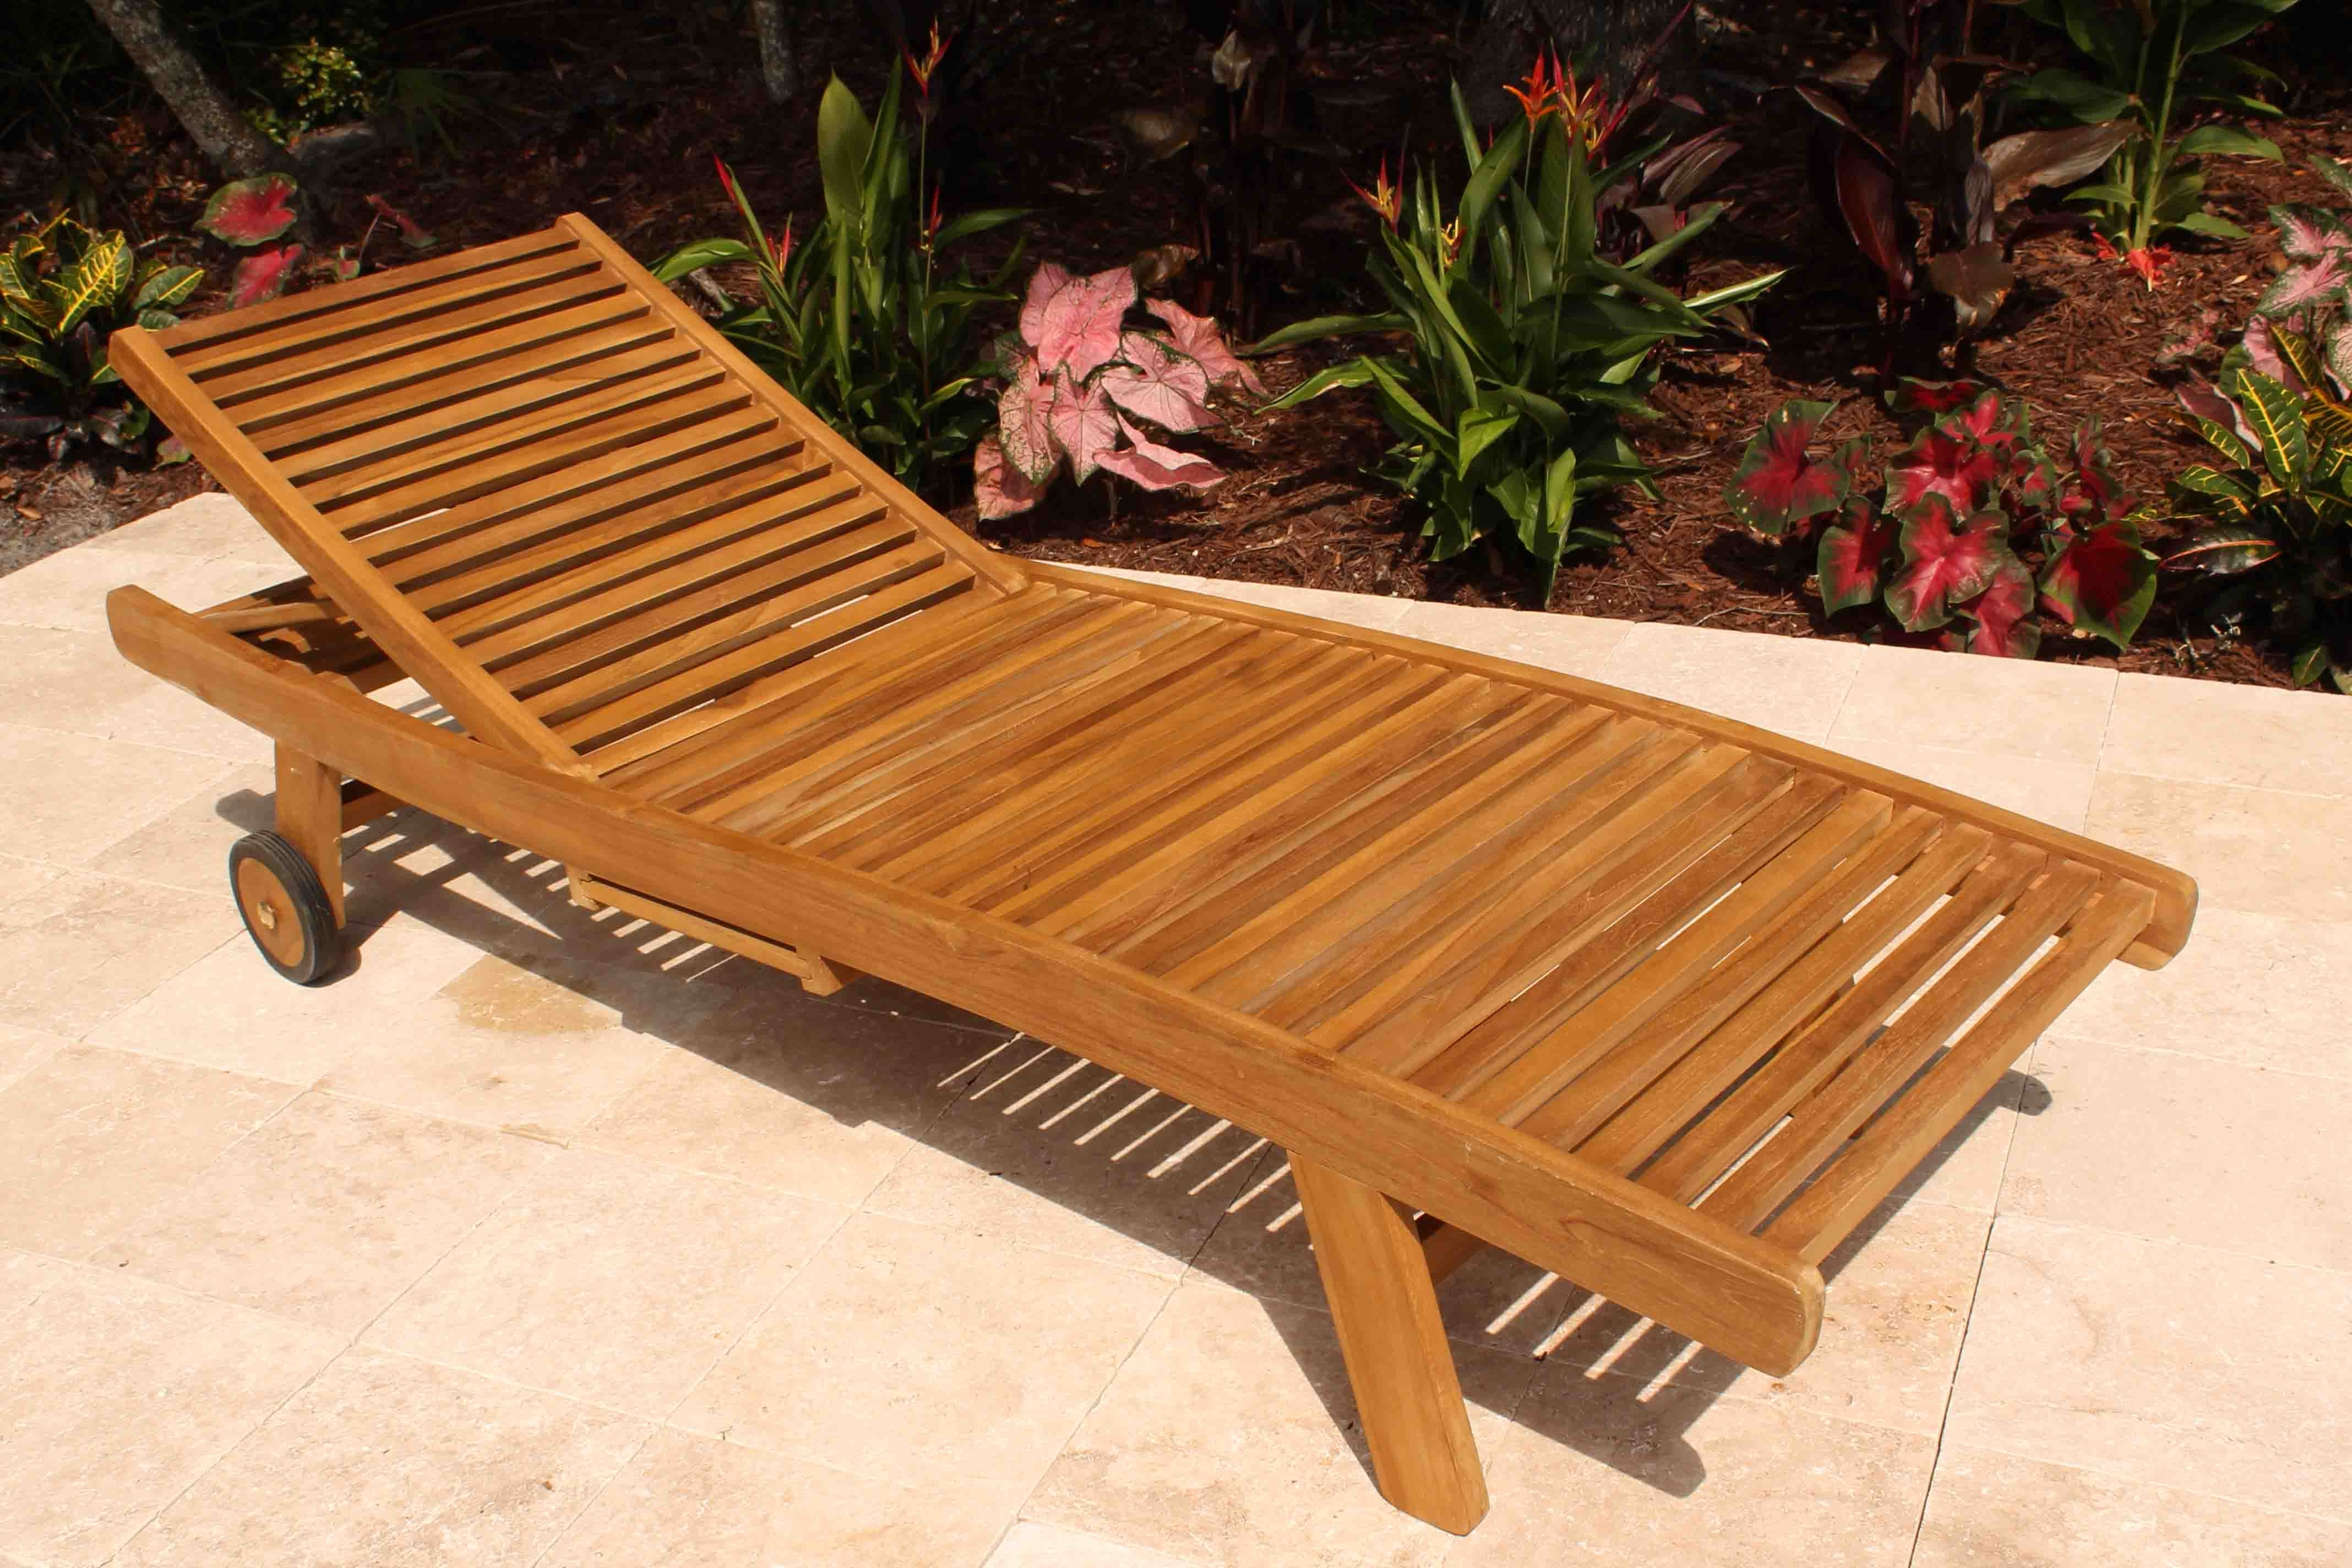 Teak Wood Chaise Lounge Chair — Teak Furnitures : Teak Chaise Throughout Fashionable Wooden Chaise Lounges (View 8 of 15)